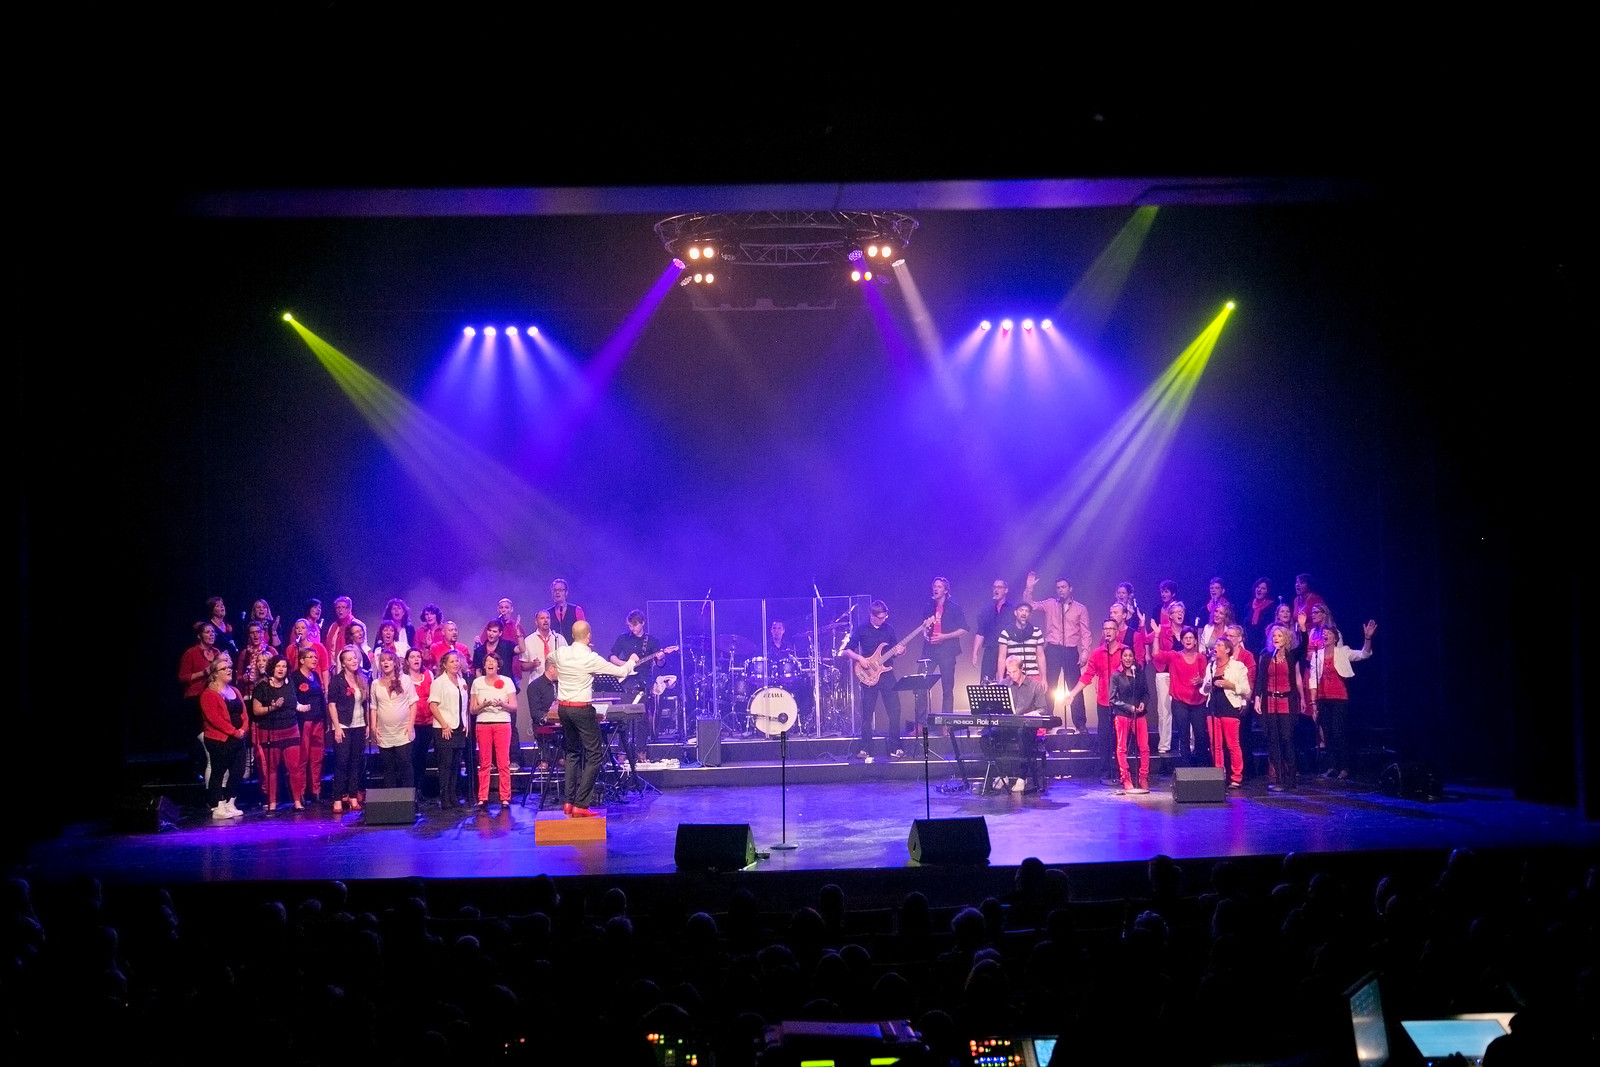 Groot concert Gospelkoor Reflection Assen